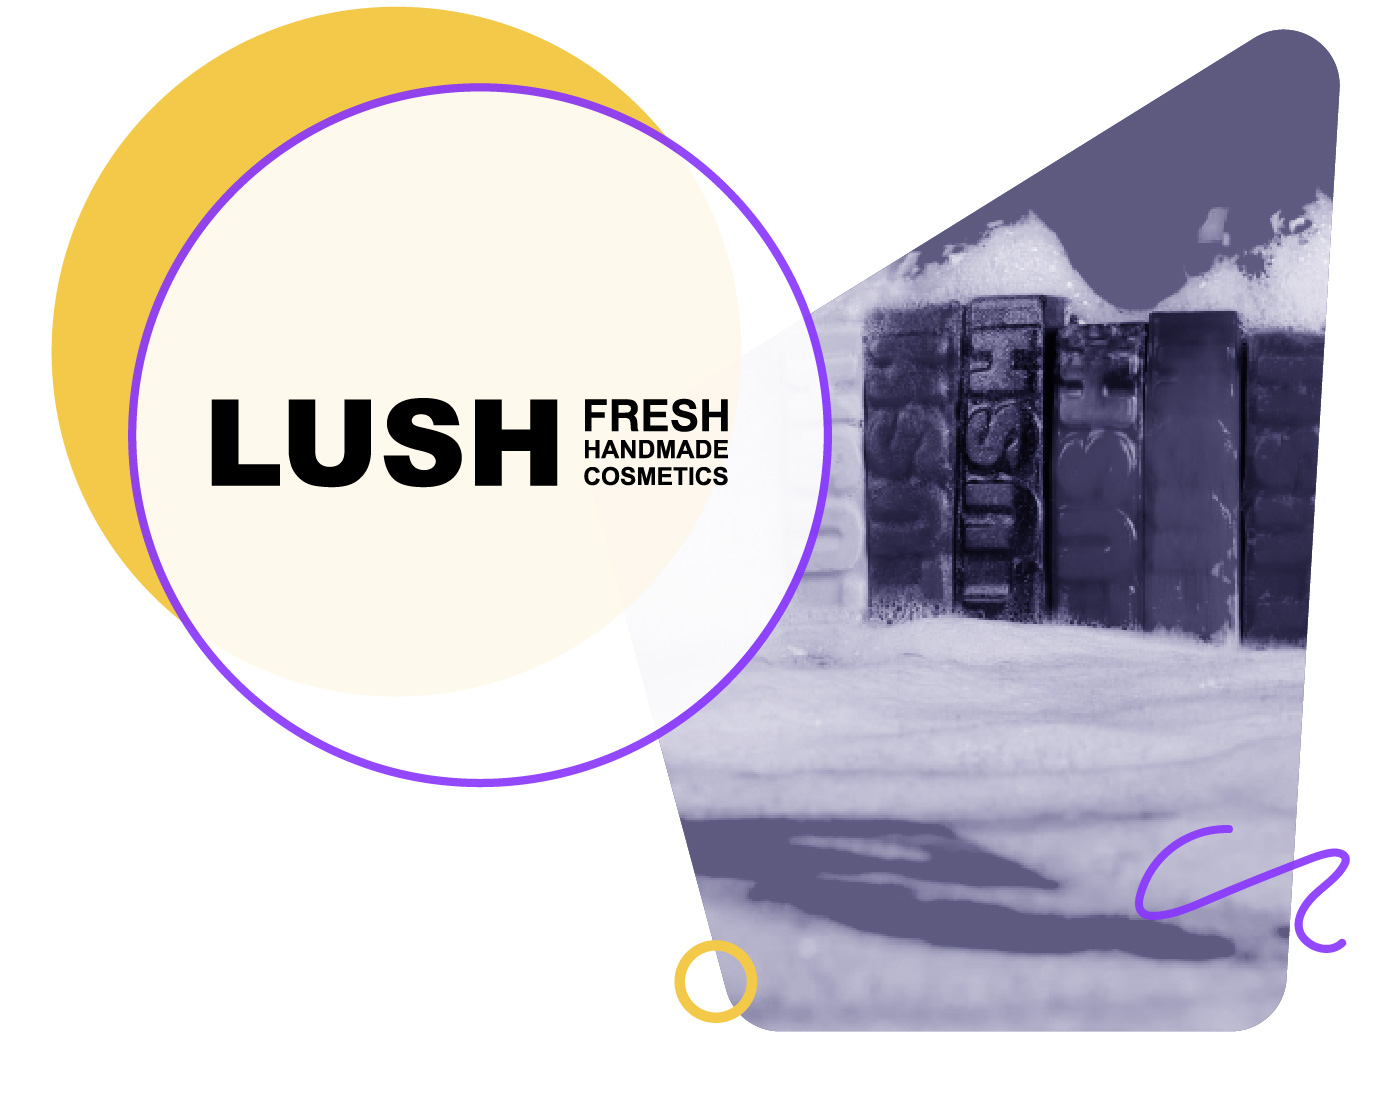 Lush Cosmetics UK using Olark live chat